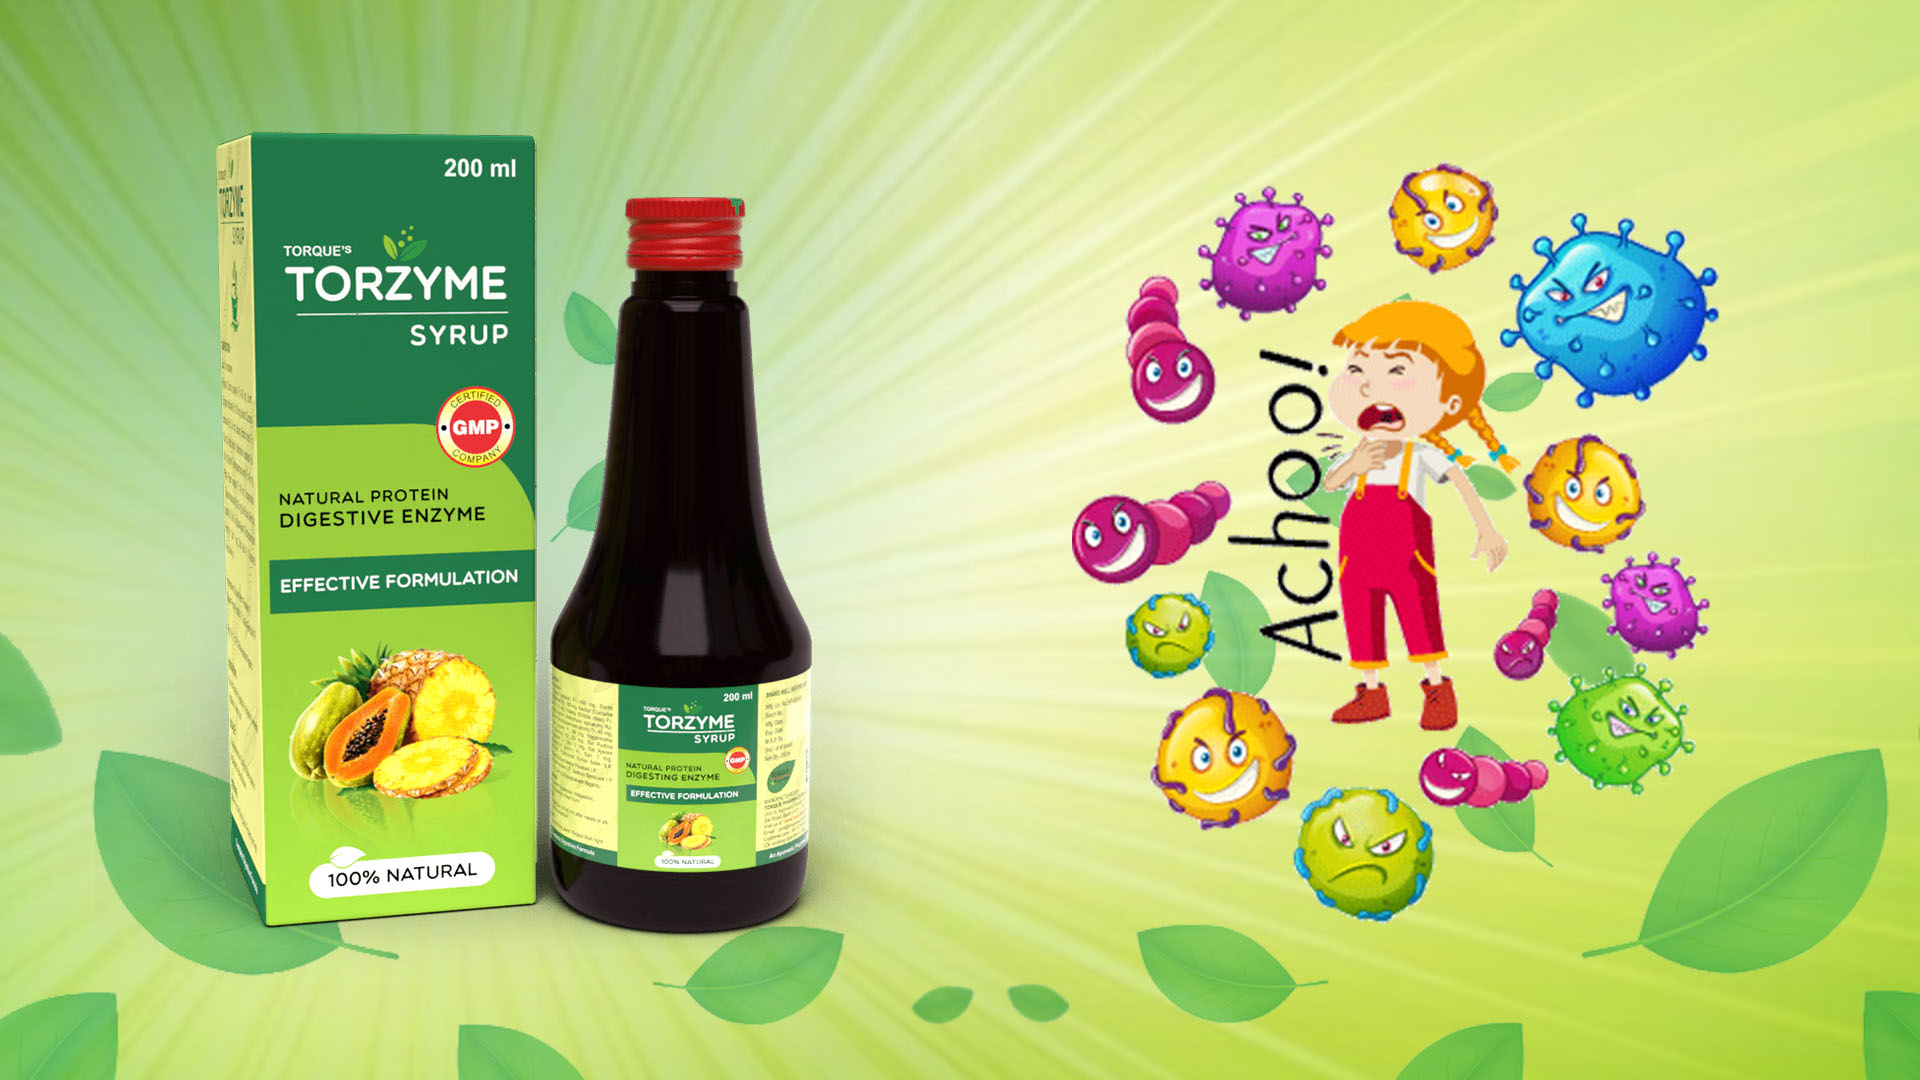 Syrup that deals with your digestive issues